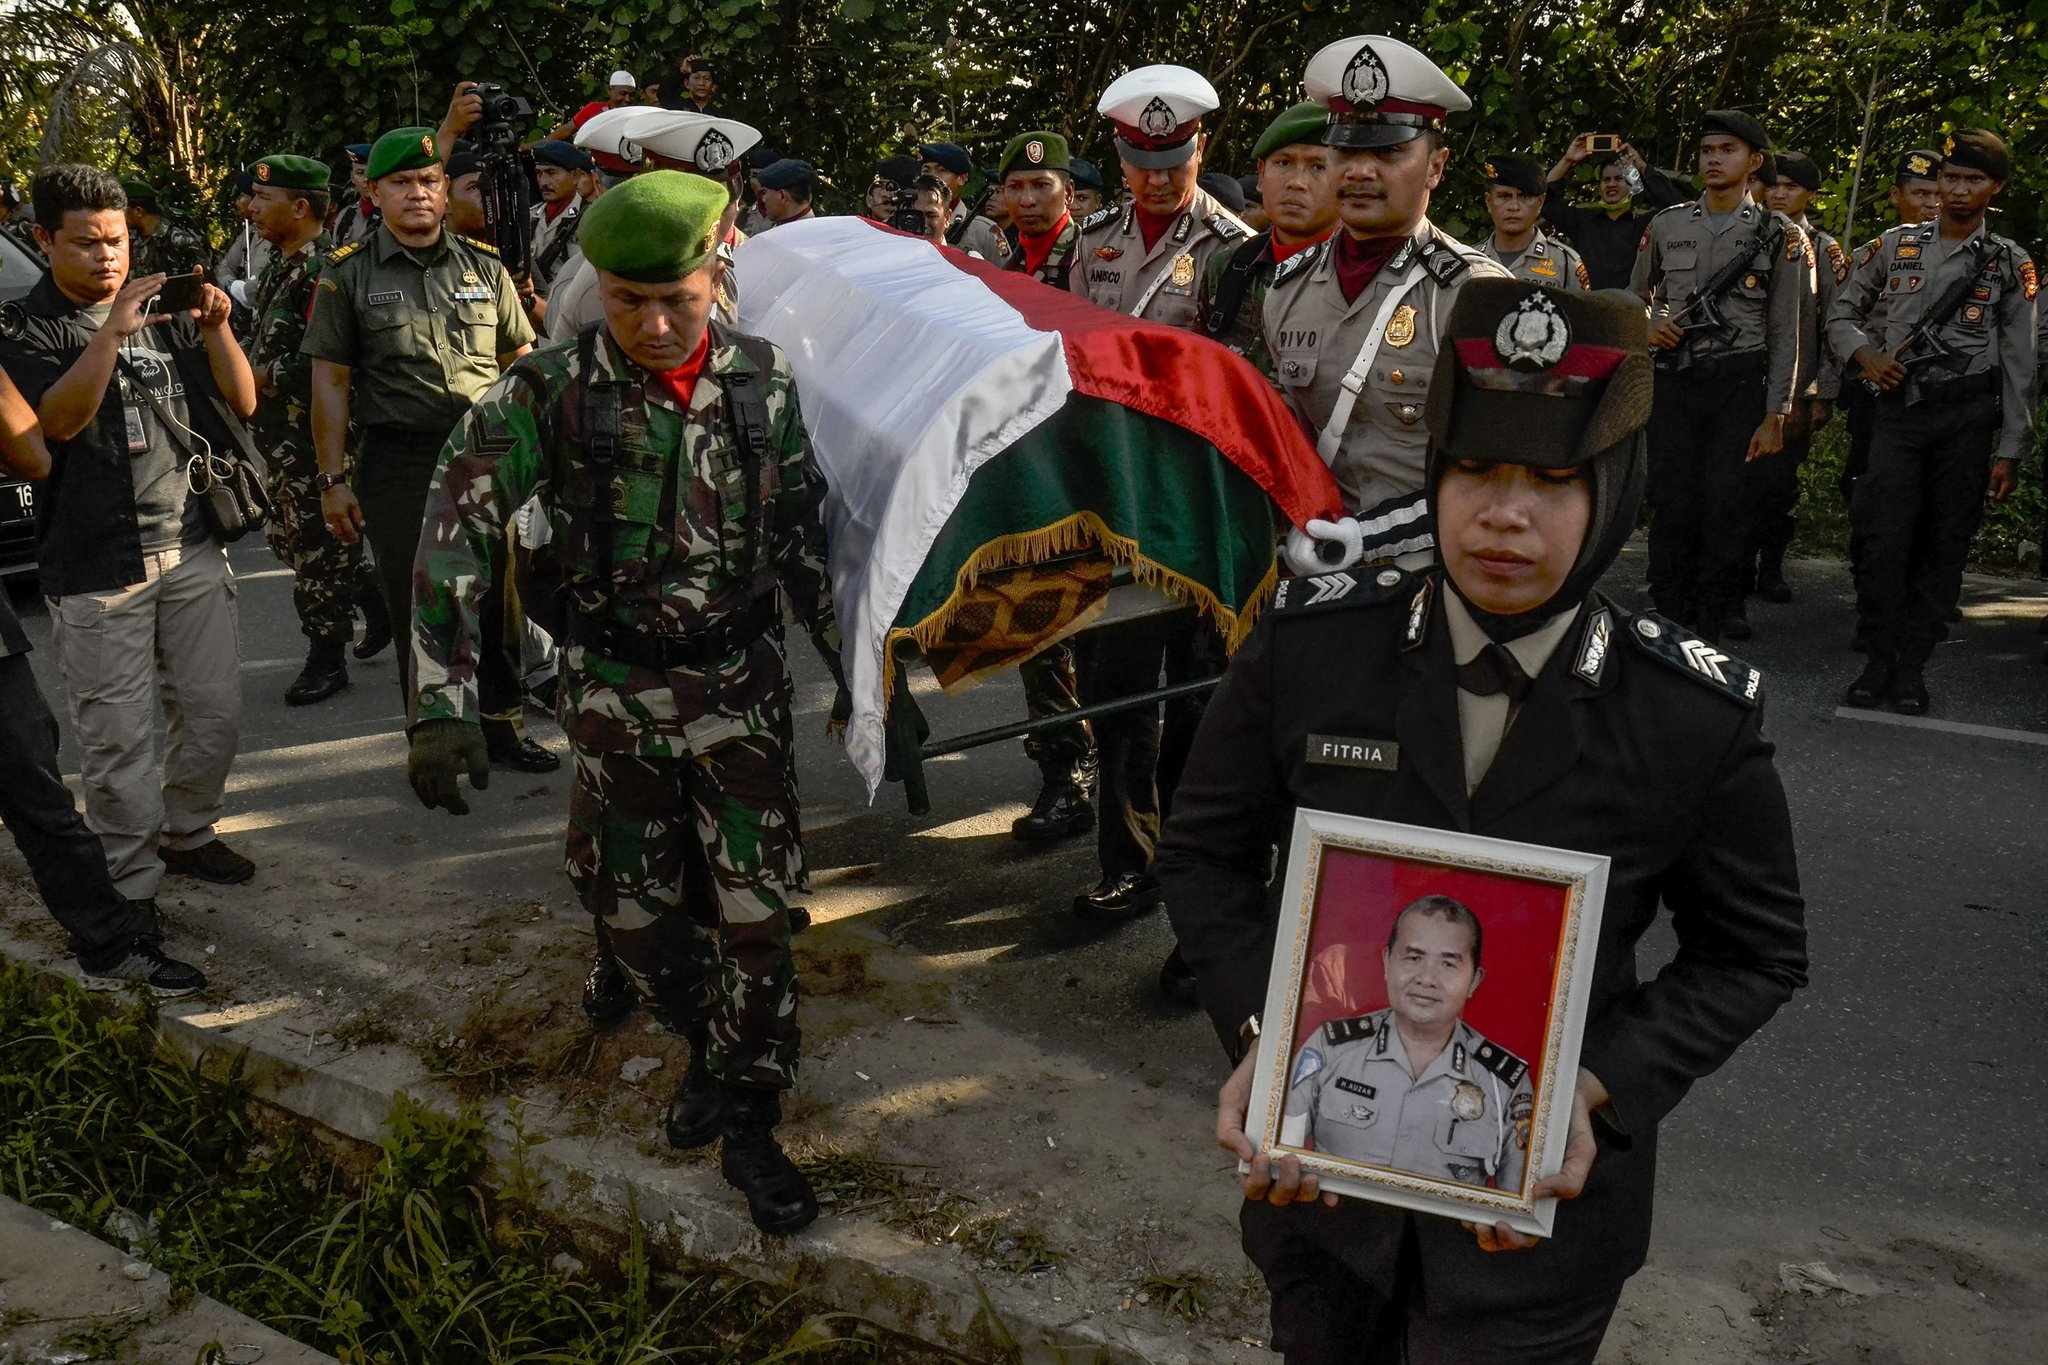 With ISIS fingerprints: Terrorism strikes Indonesia amid sectarian violence